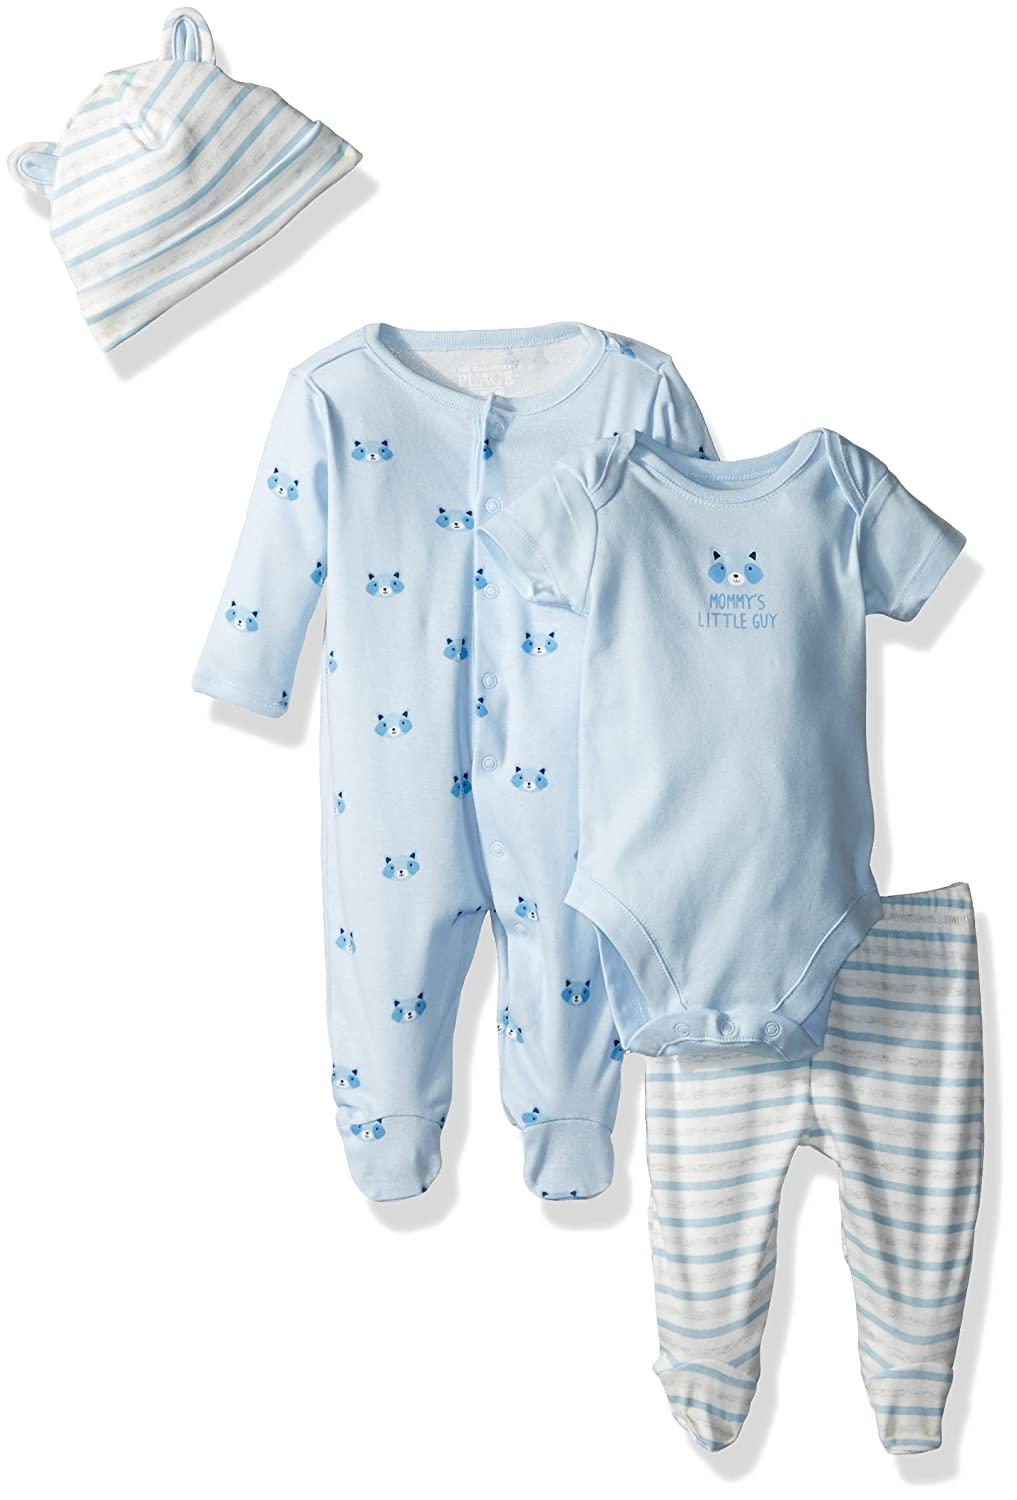 42317412fb87 Amazon.com  The Children s Place Unisex Baby Layette Gift Set  Clothing